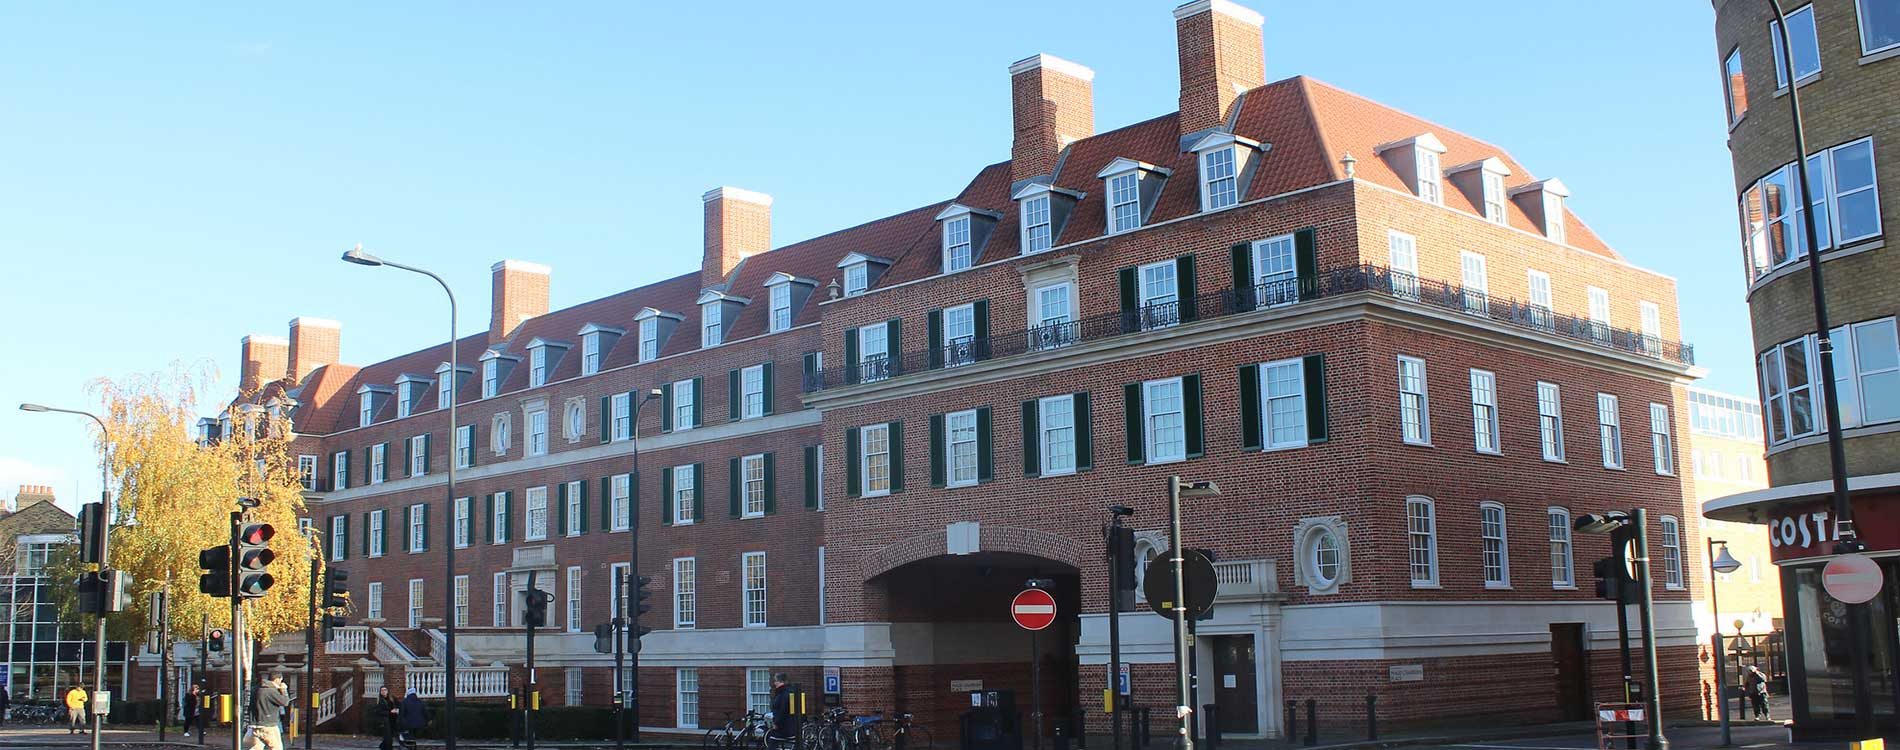 Exterior of heritage property after cyclical maintenance works on clapham common